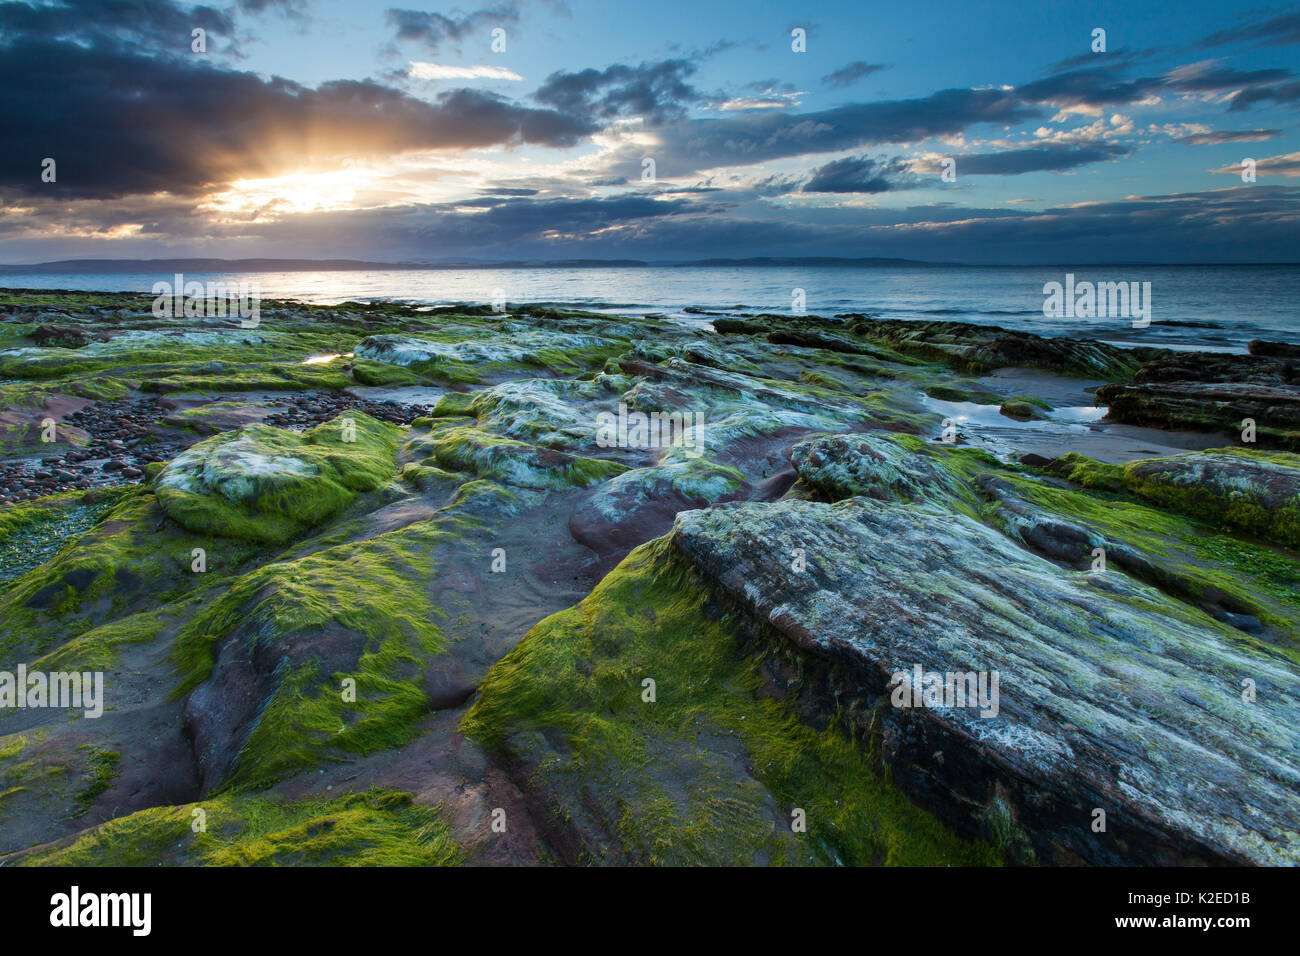 Seaweed covered rocky foreshore at sunset, Moray Firth, Moray, Scotland, UK, August 2013. Stock Photo